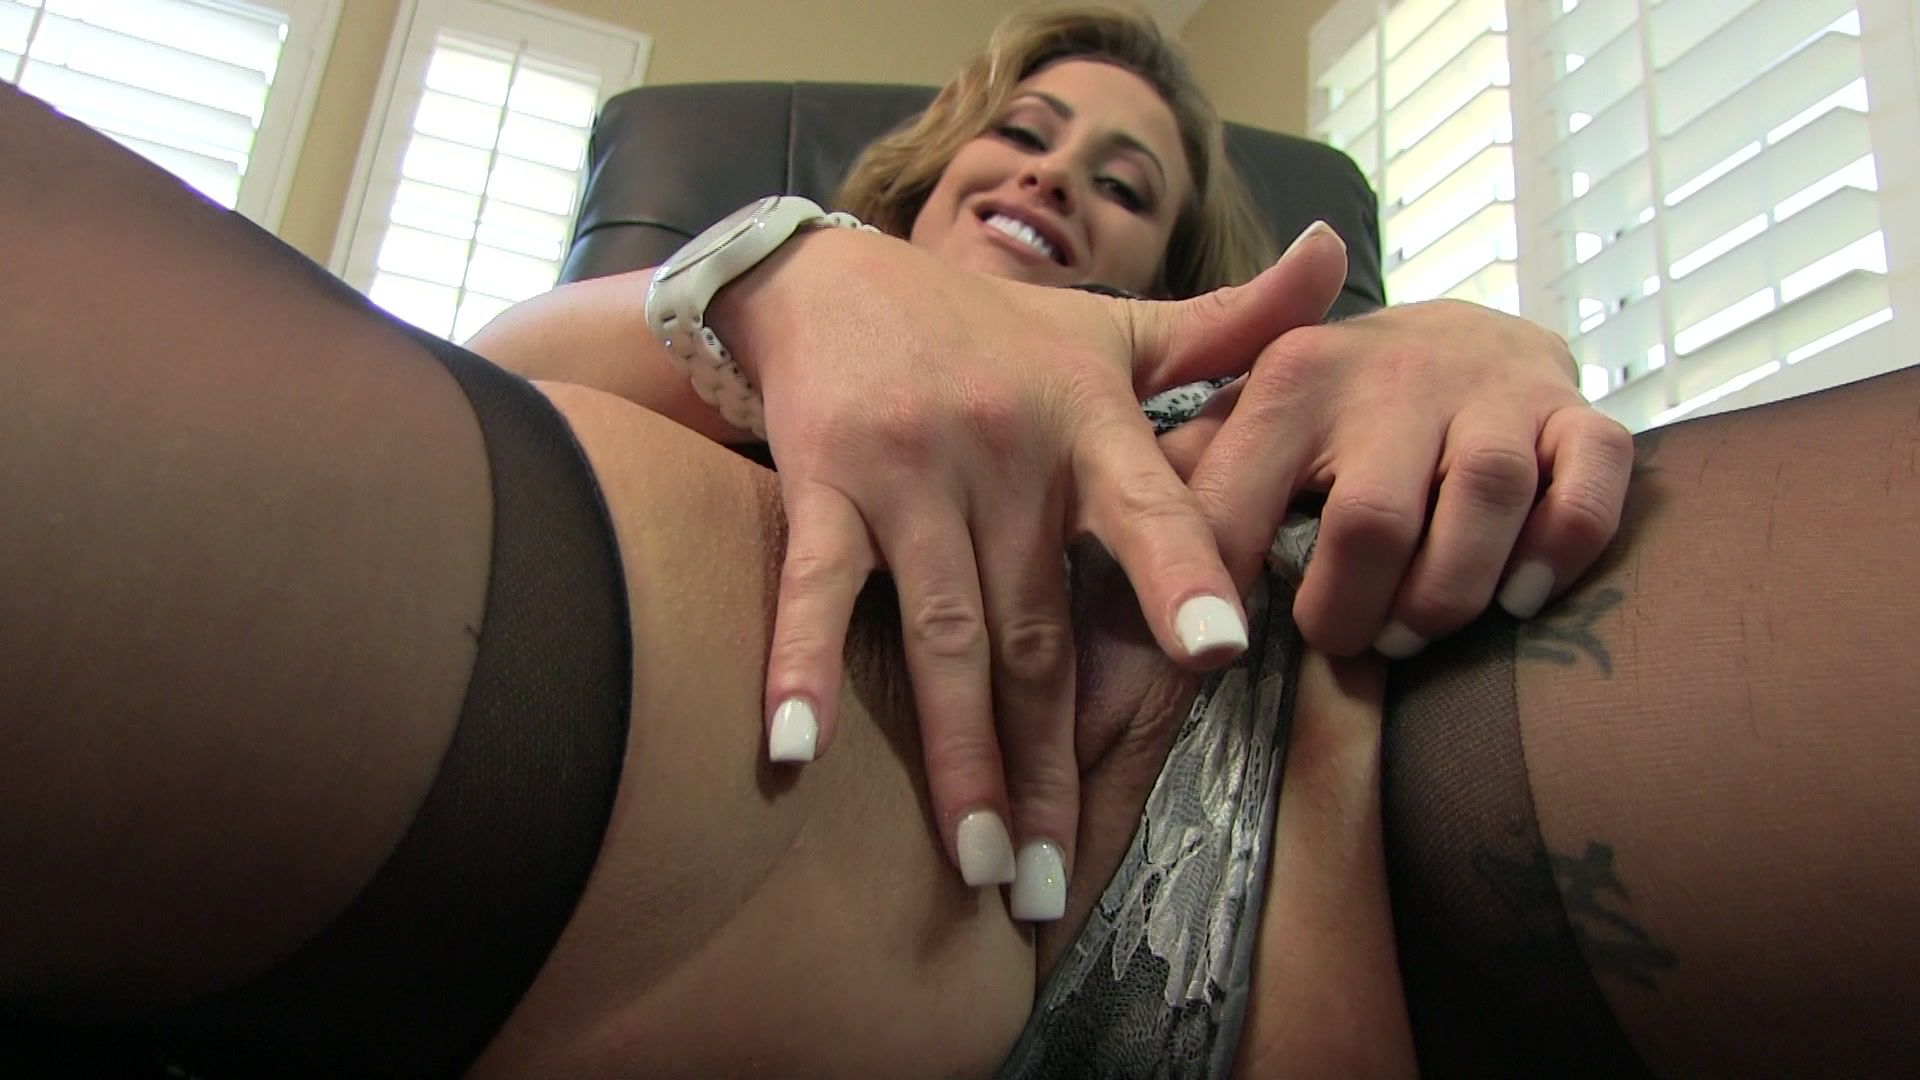 Bigbooty milf sucks cock and gets banged